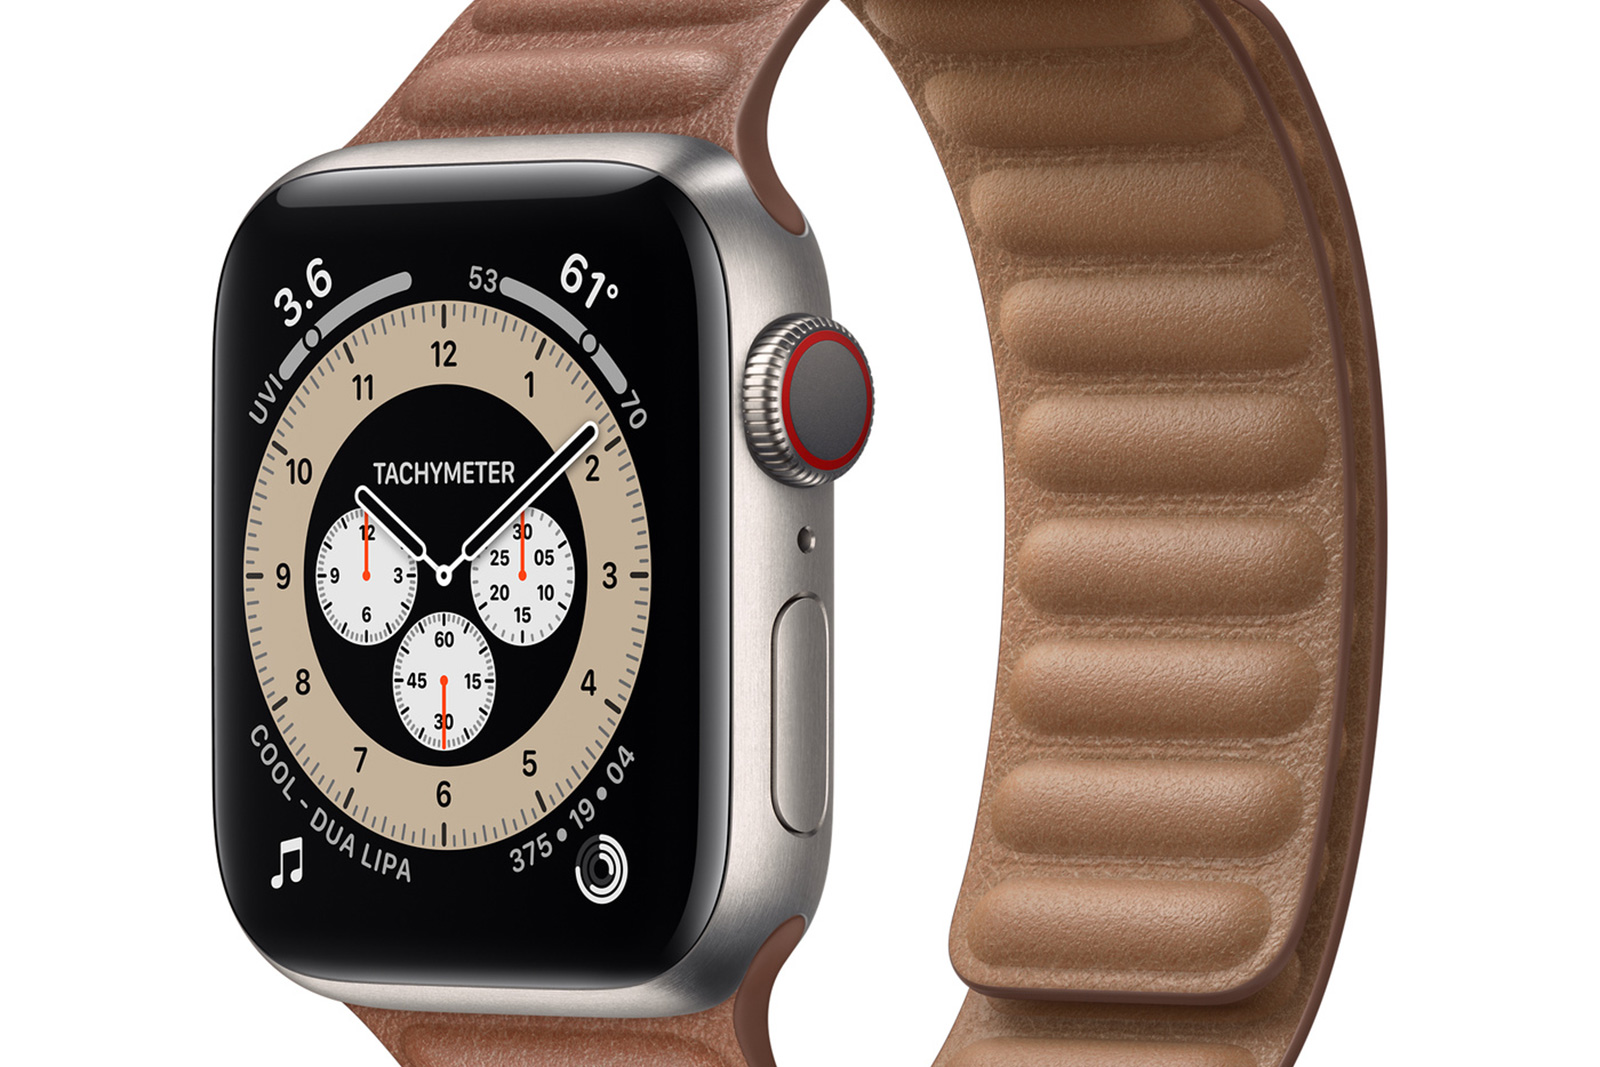 Apple Watch titanium models are largely unavailable